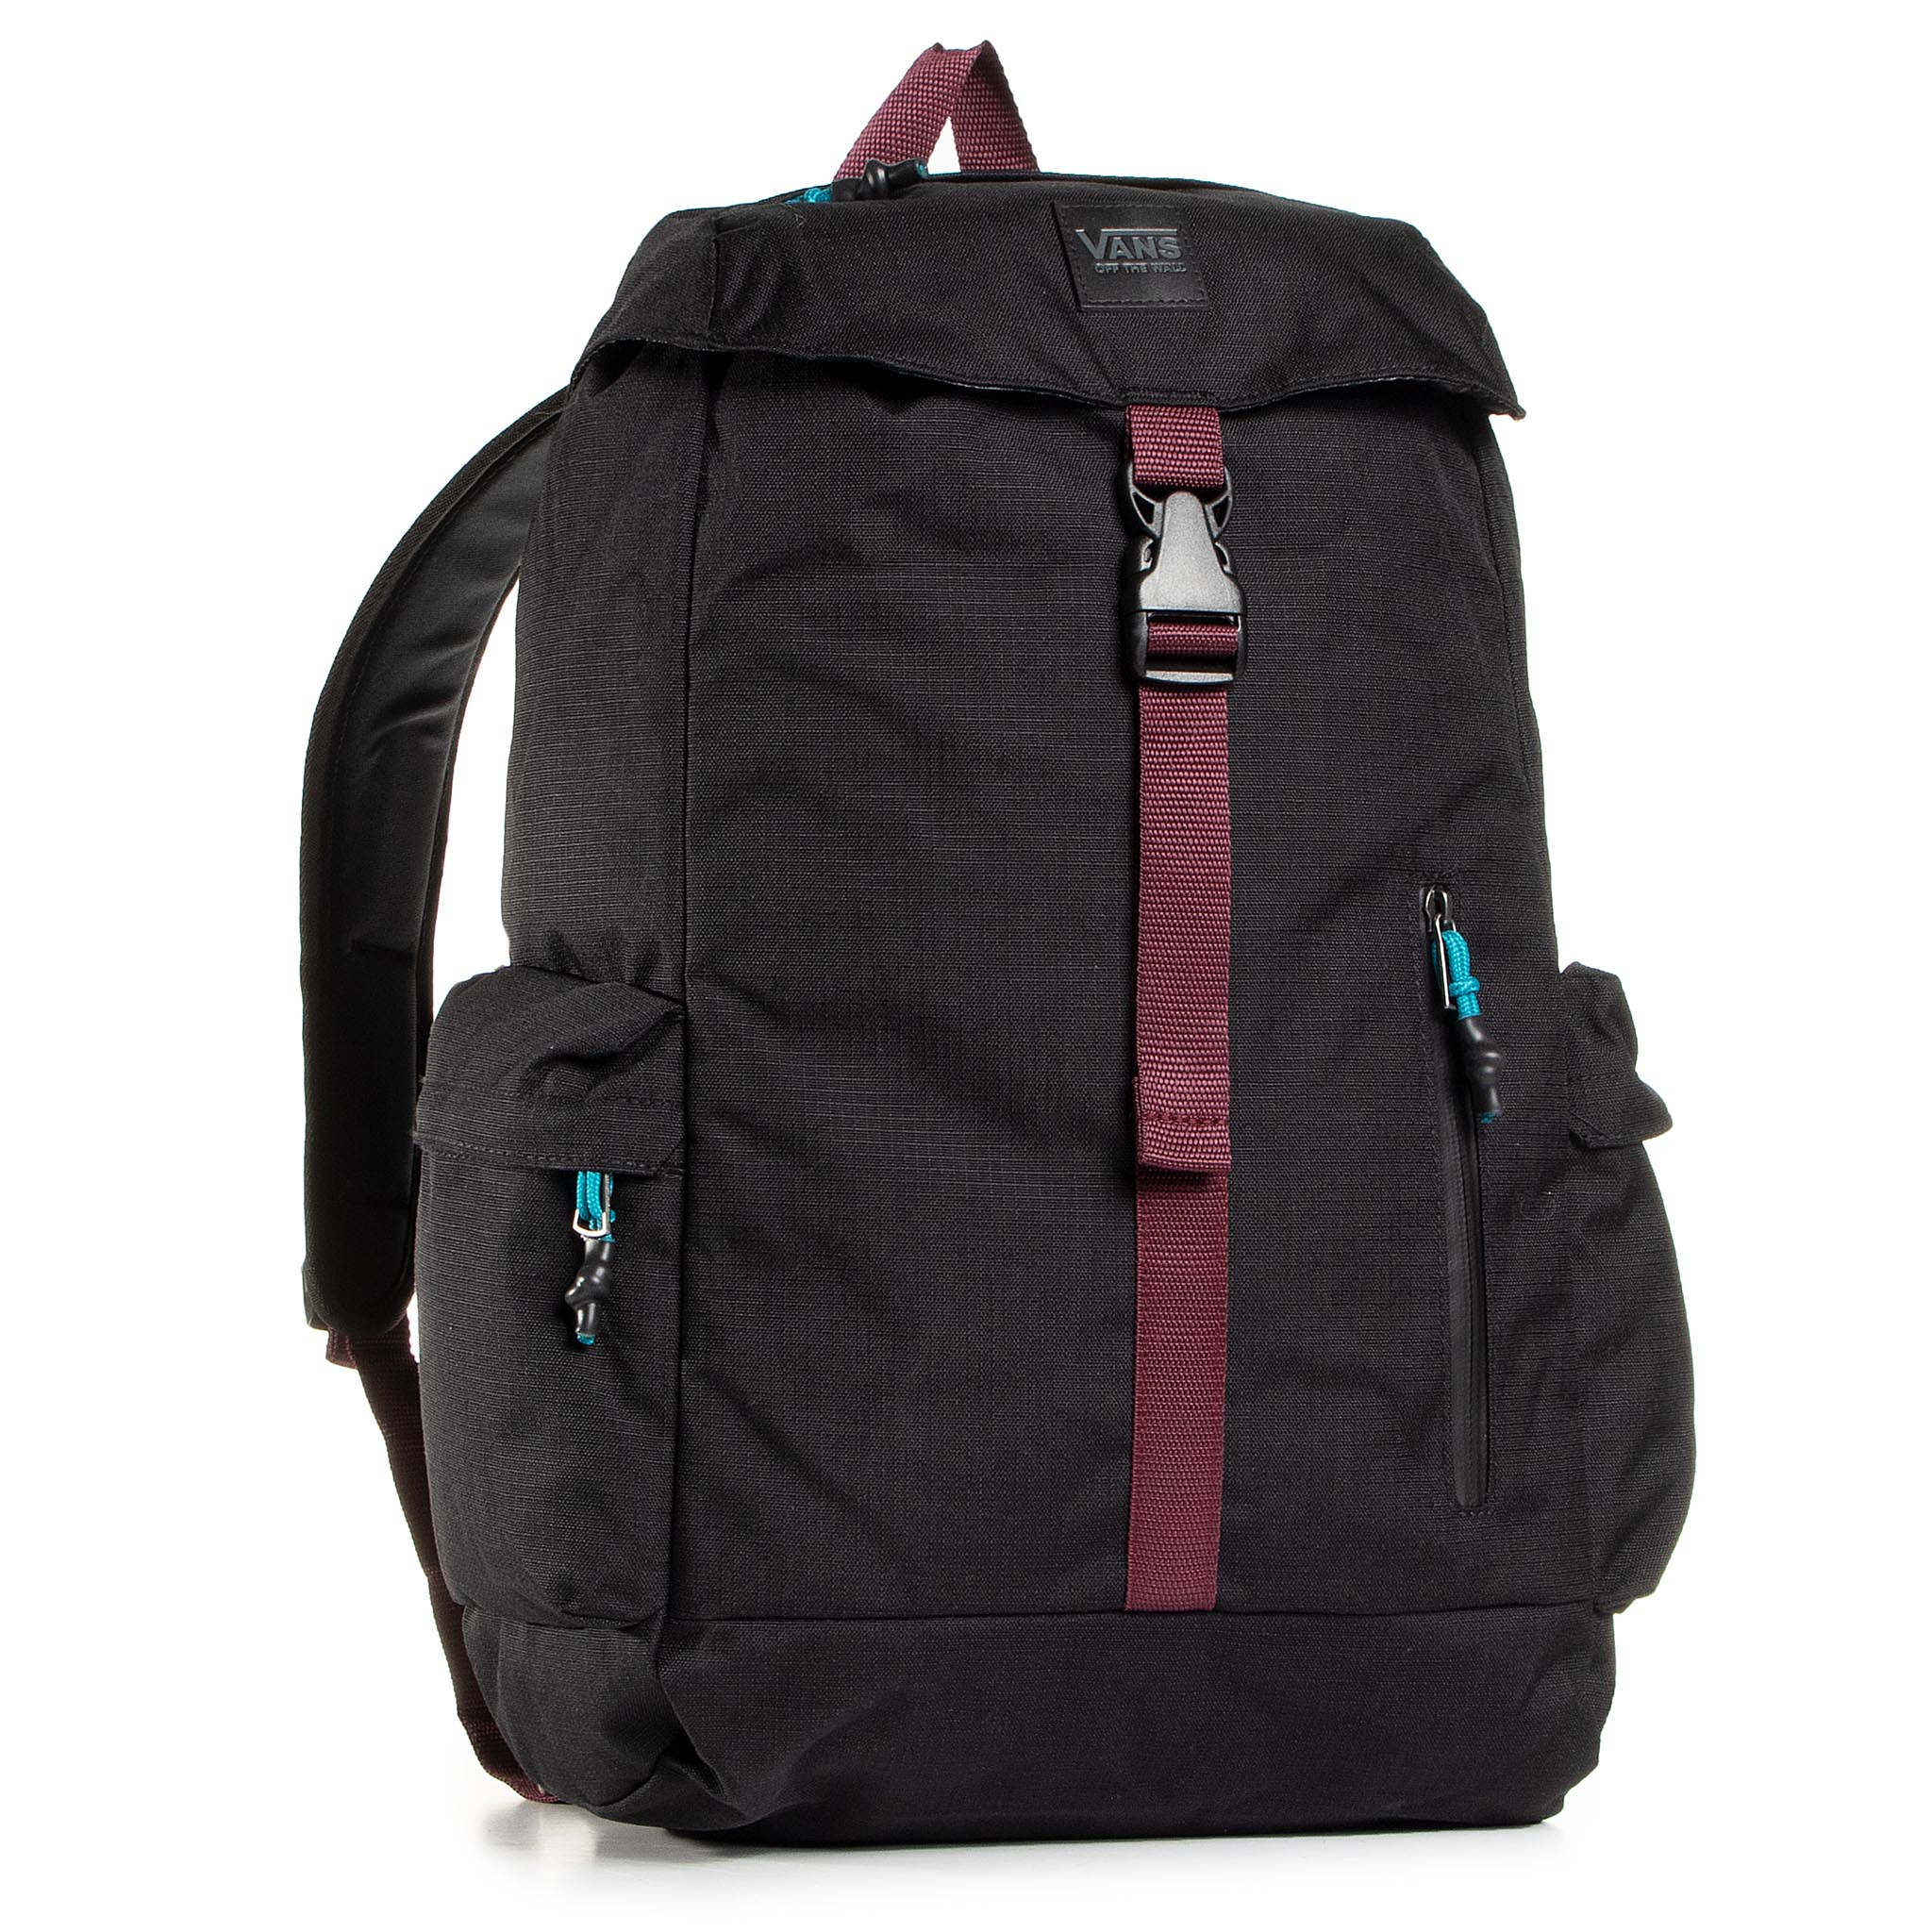 Sac à dos VANS - Ranger Plus Backpack VN0A47RF9NZ1 Black/Port Royale